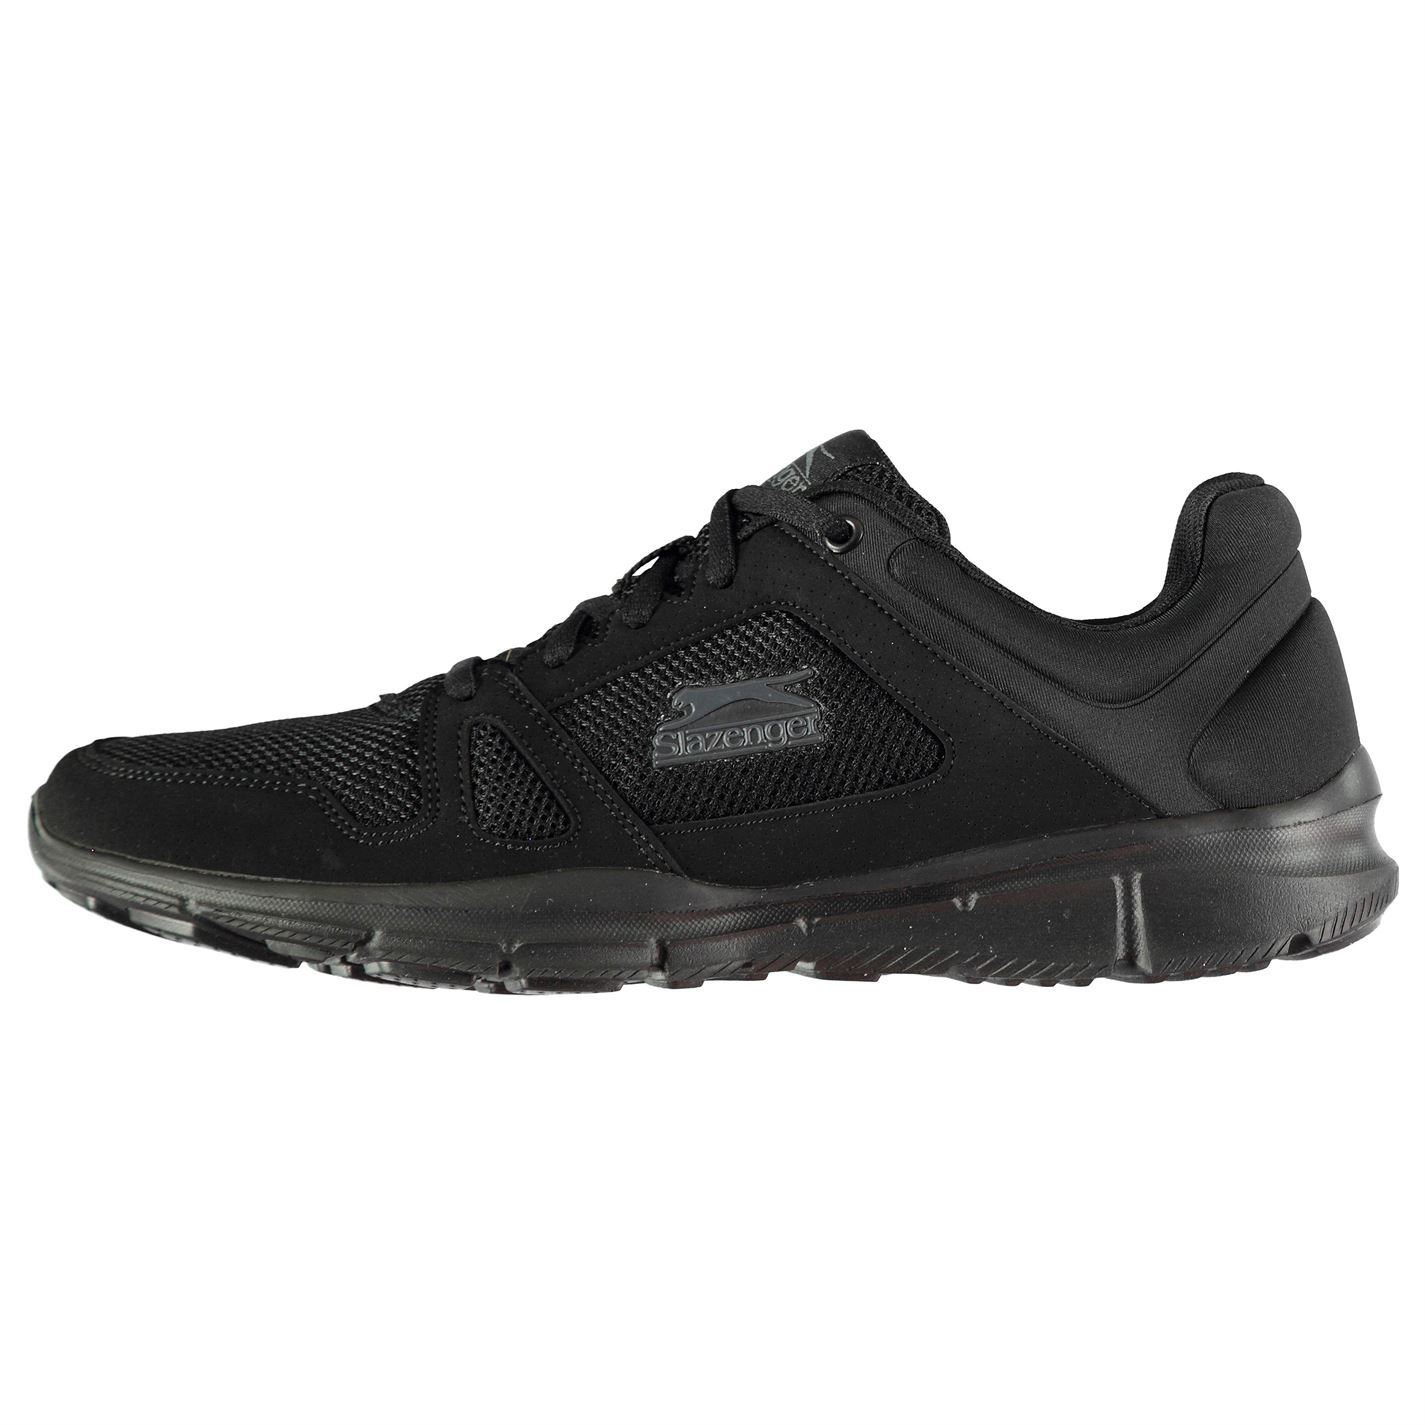 952eac247e18 ... Slazenger Force Mesh Running Shoes Mens Black Fitness Jogging Trainers  Sneakers ...